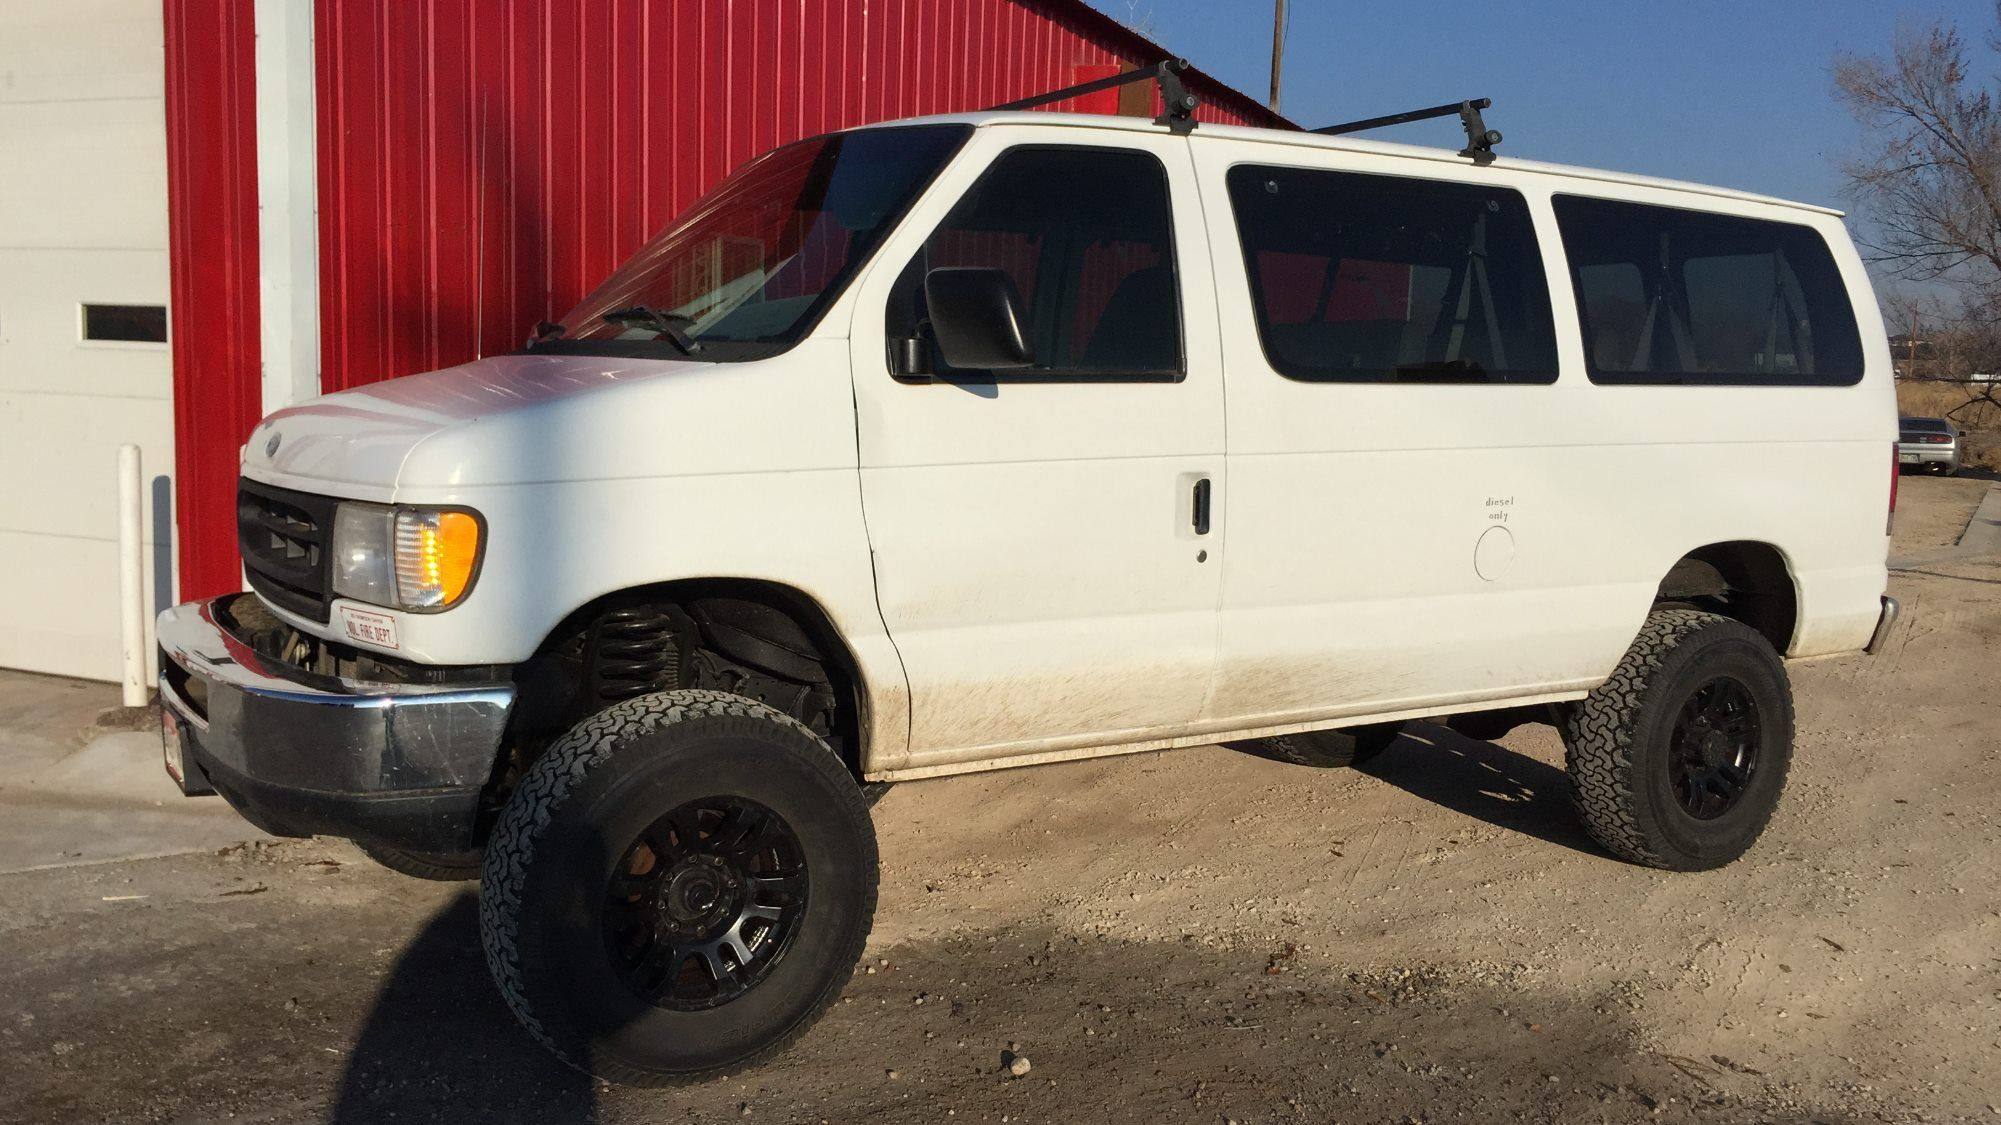 Ford Van 2 Wheel Drive Lift Kit Business I Am Selling A 2 Wheel